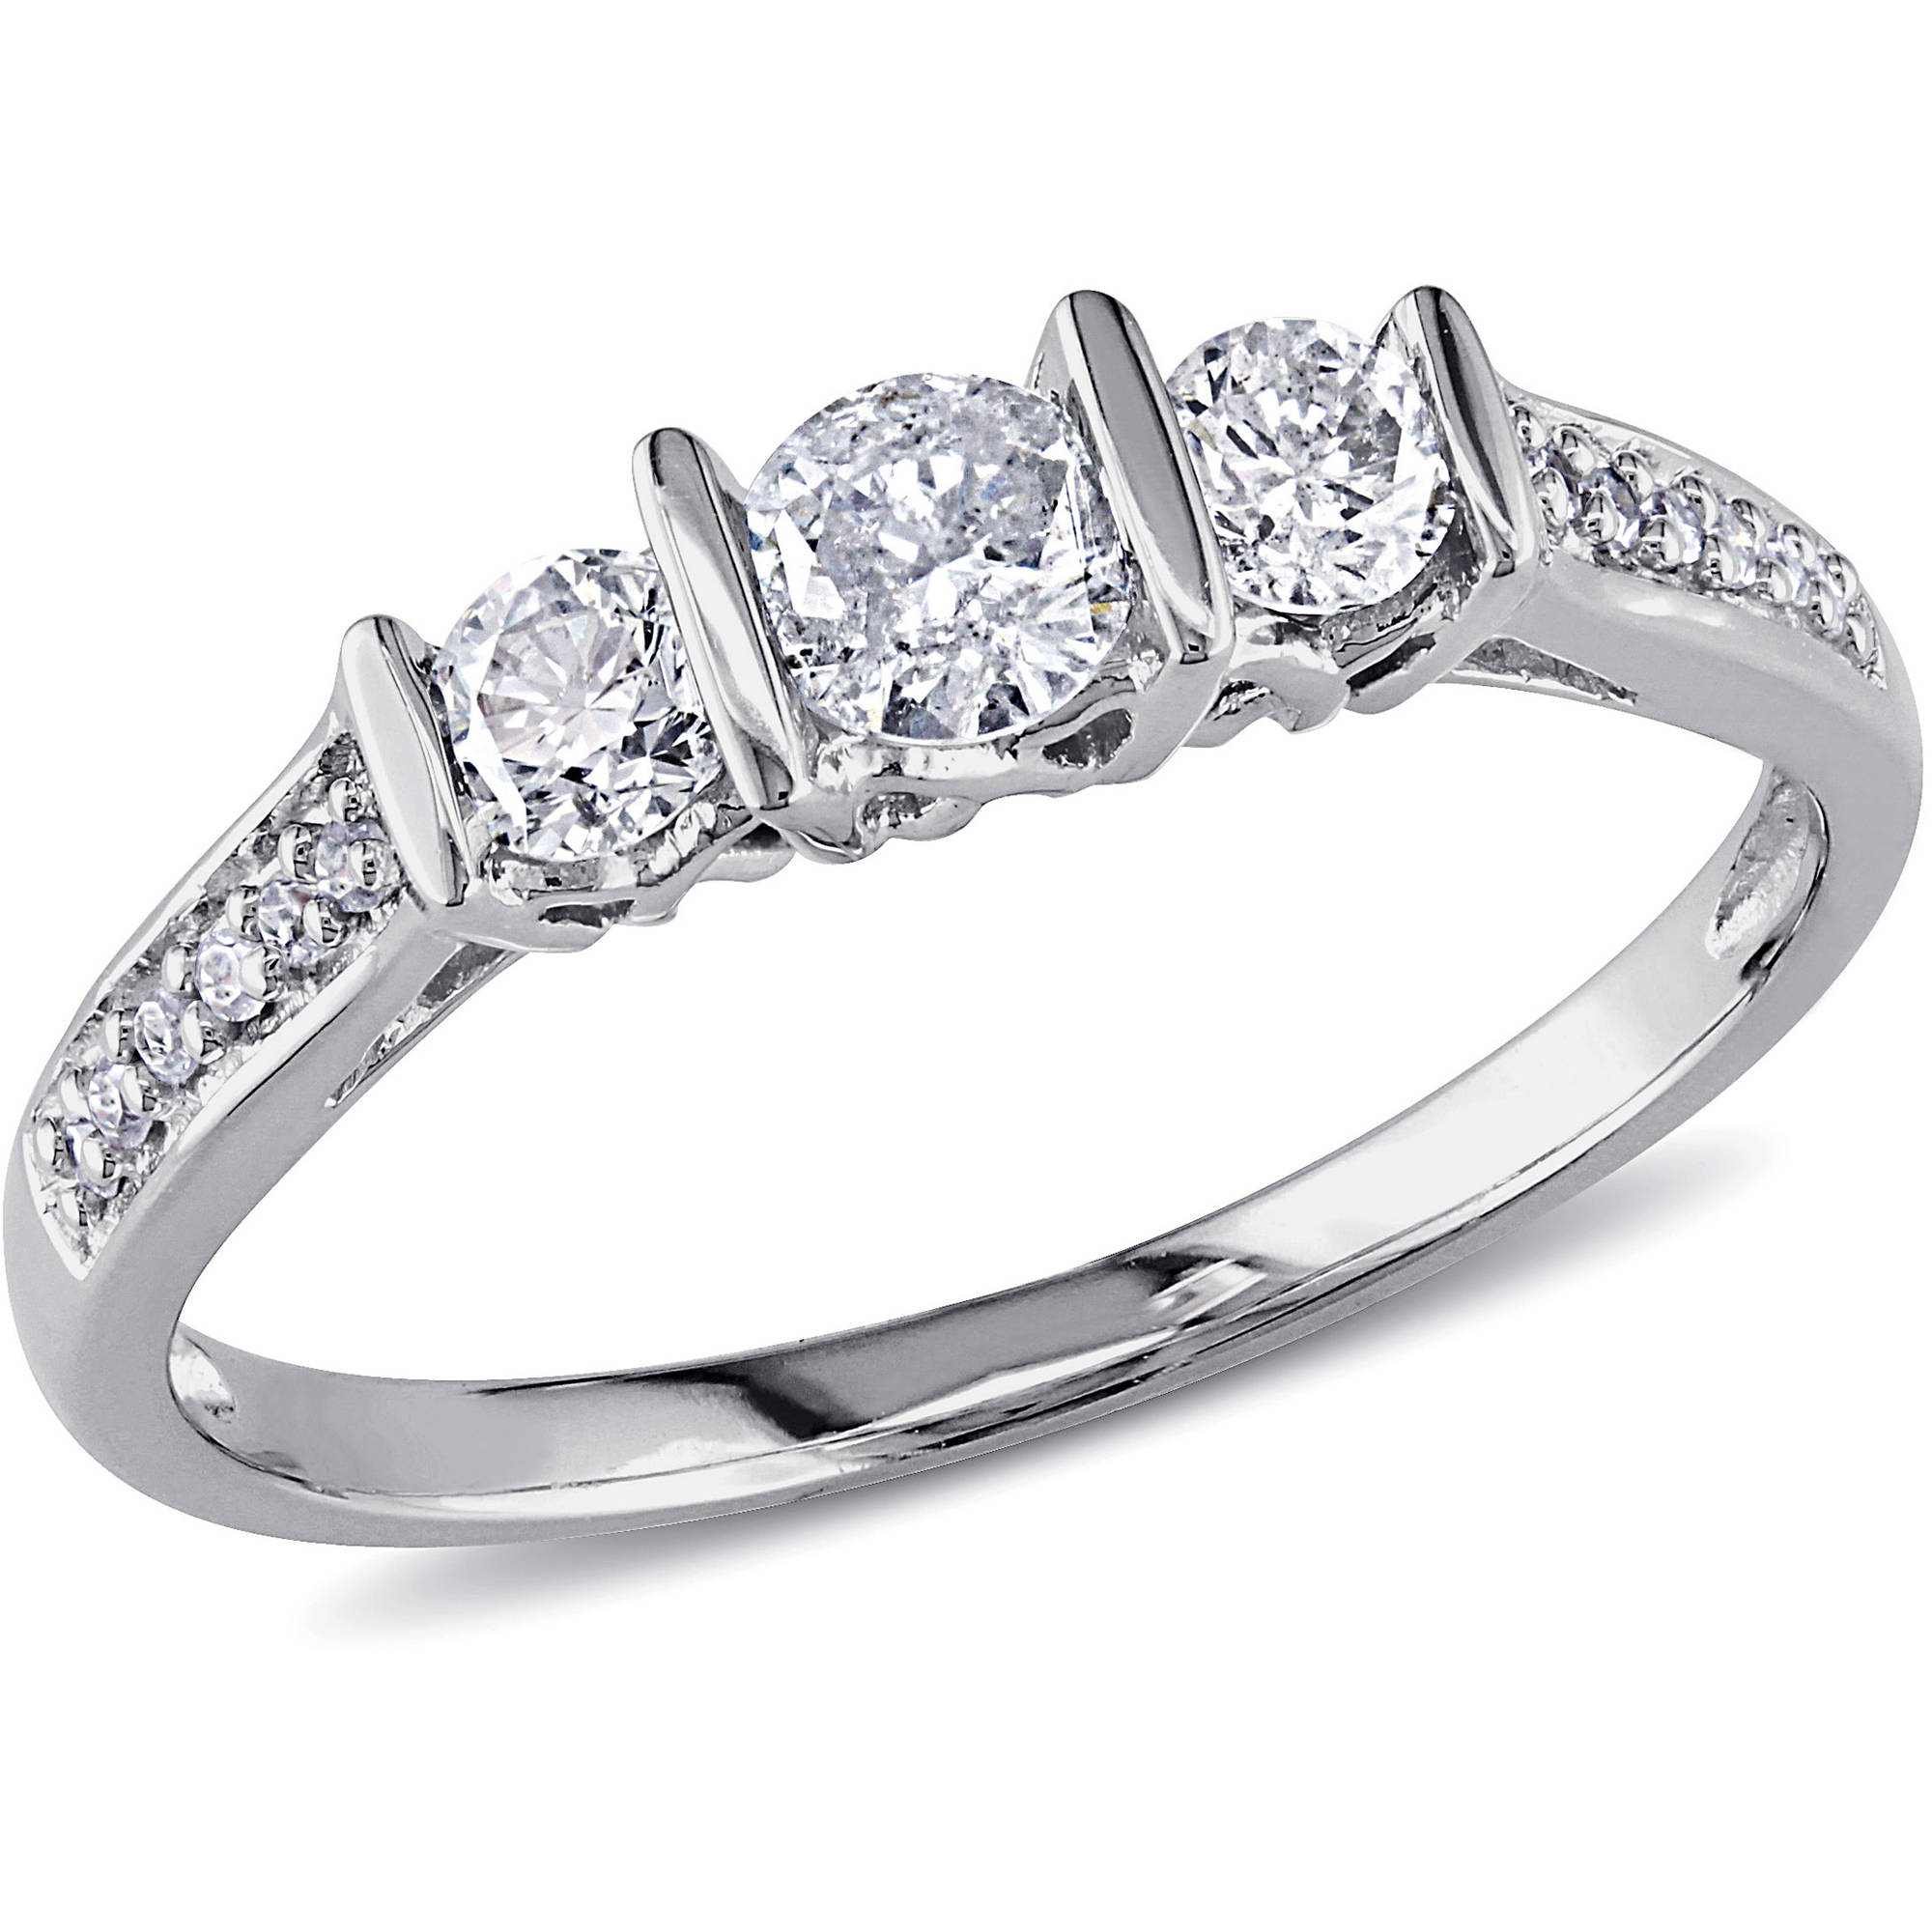 2 Carat Tw Threestone Diamond Engagement Ring In 10kt White Gold   Walmart